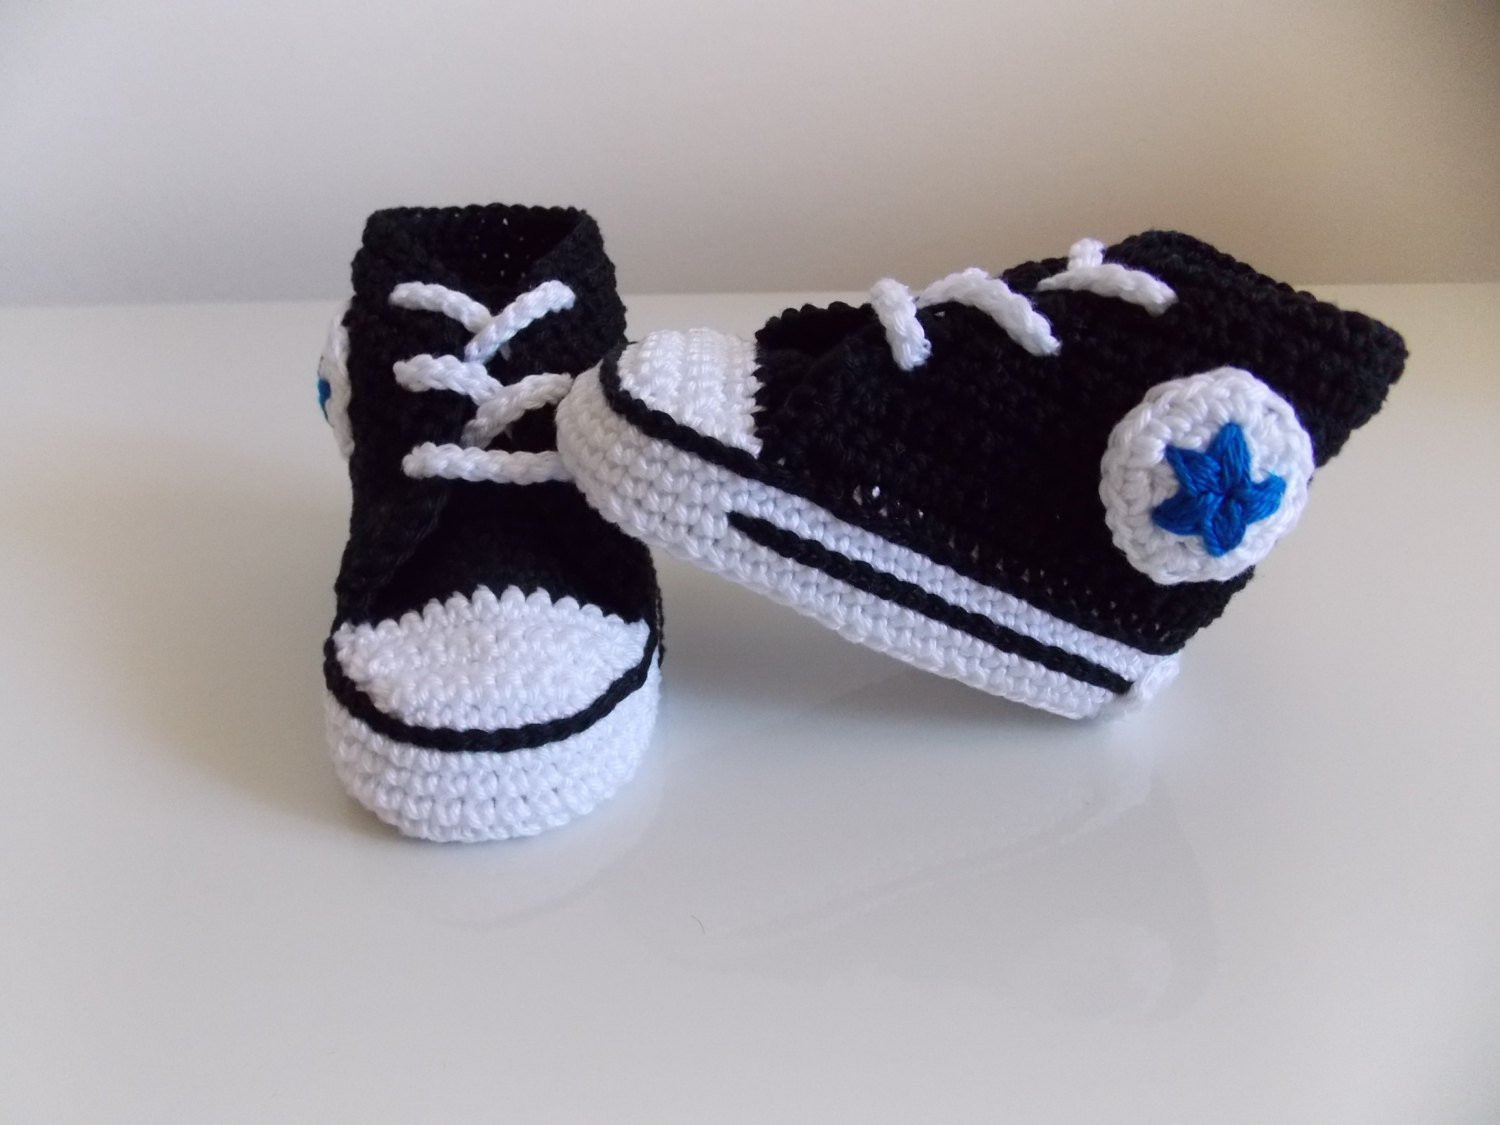 Crochet Sneakers Lovely Baby Crochet Converse Newborn Sneakers Booties by Of Gorgeous 50 Pics Crochet Sneakers